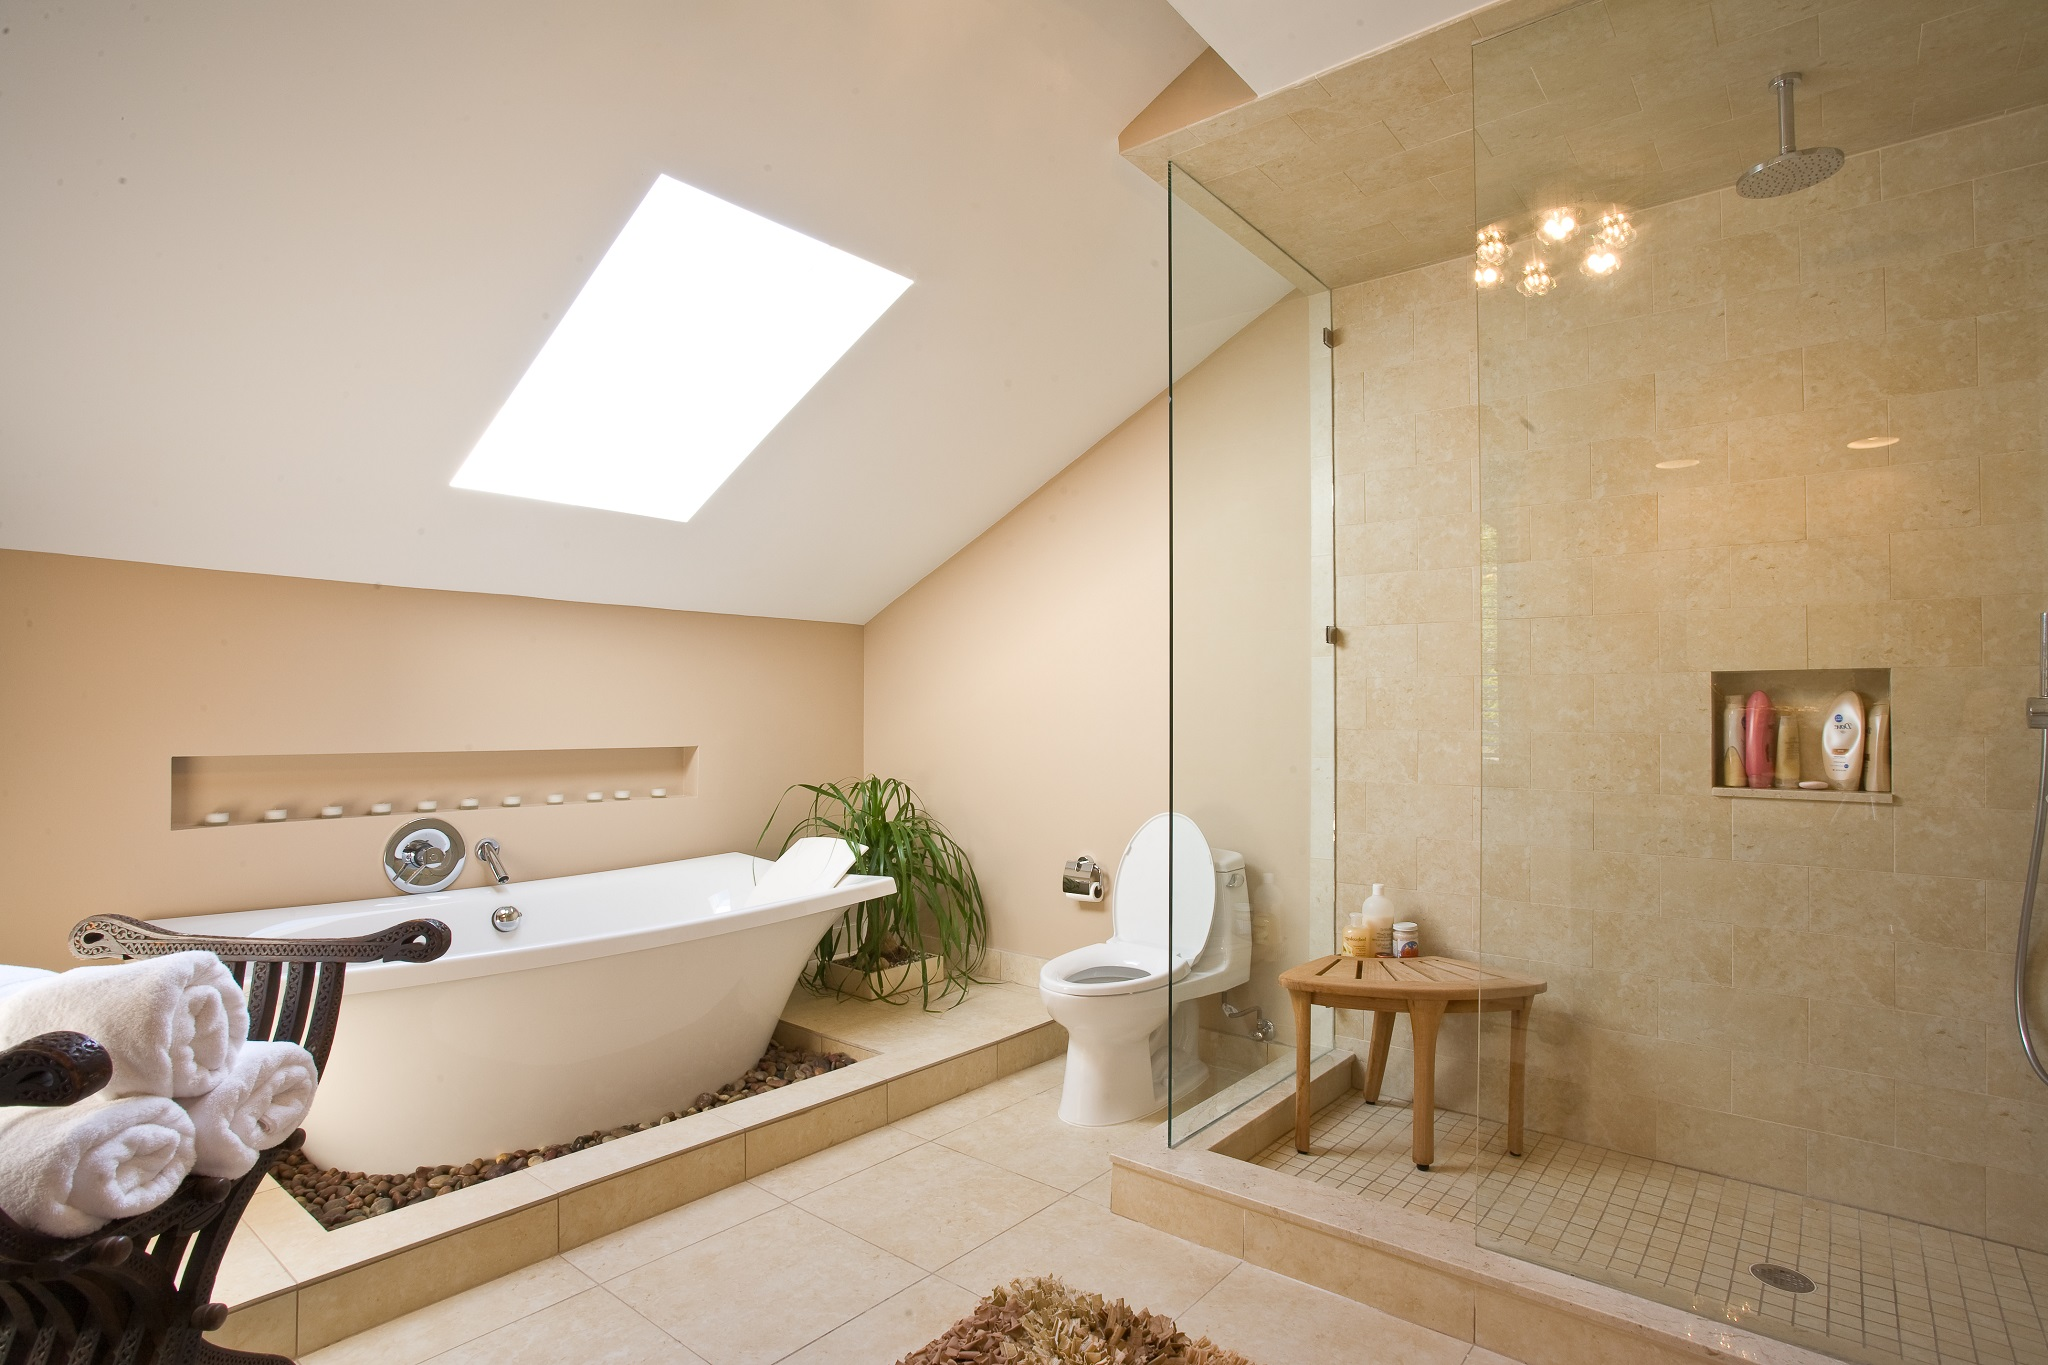 Minimalist Luxury Bathroom With Shower Room (Image 7 of 8)